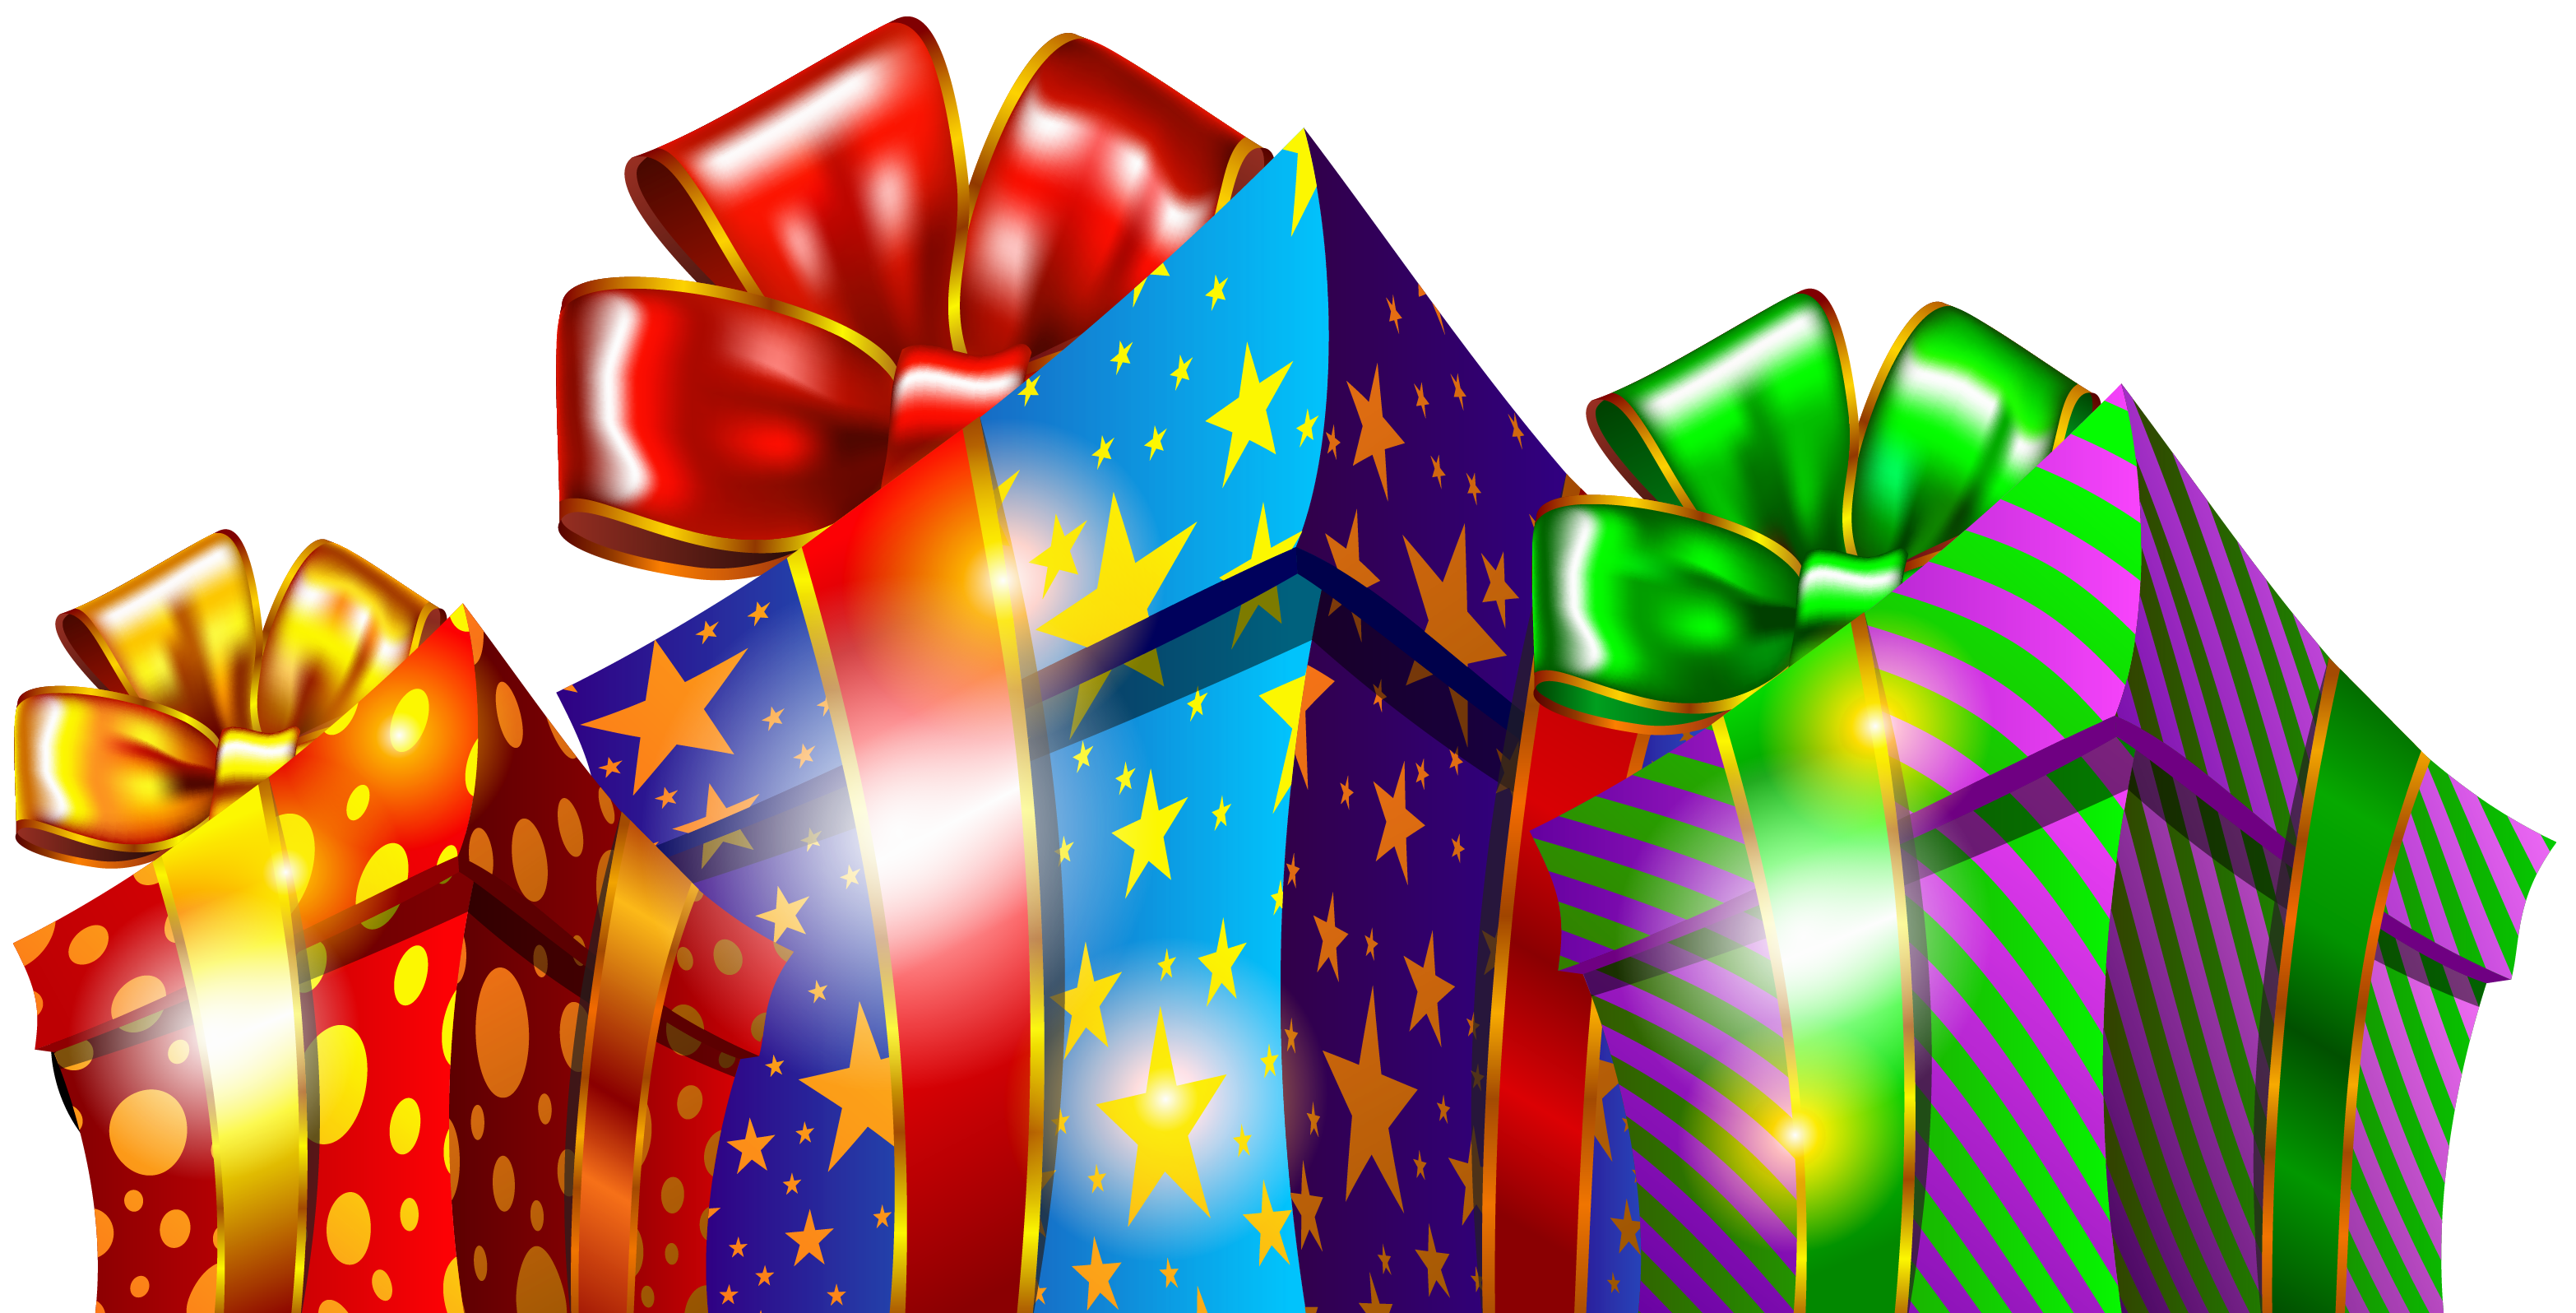 Holiday clipart mountain. Christmas gift boxes png